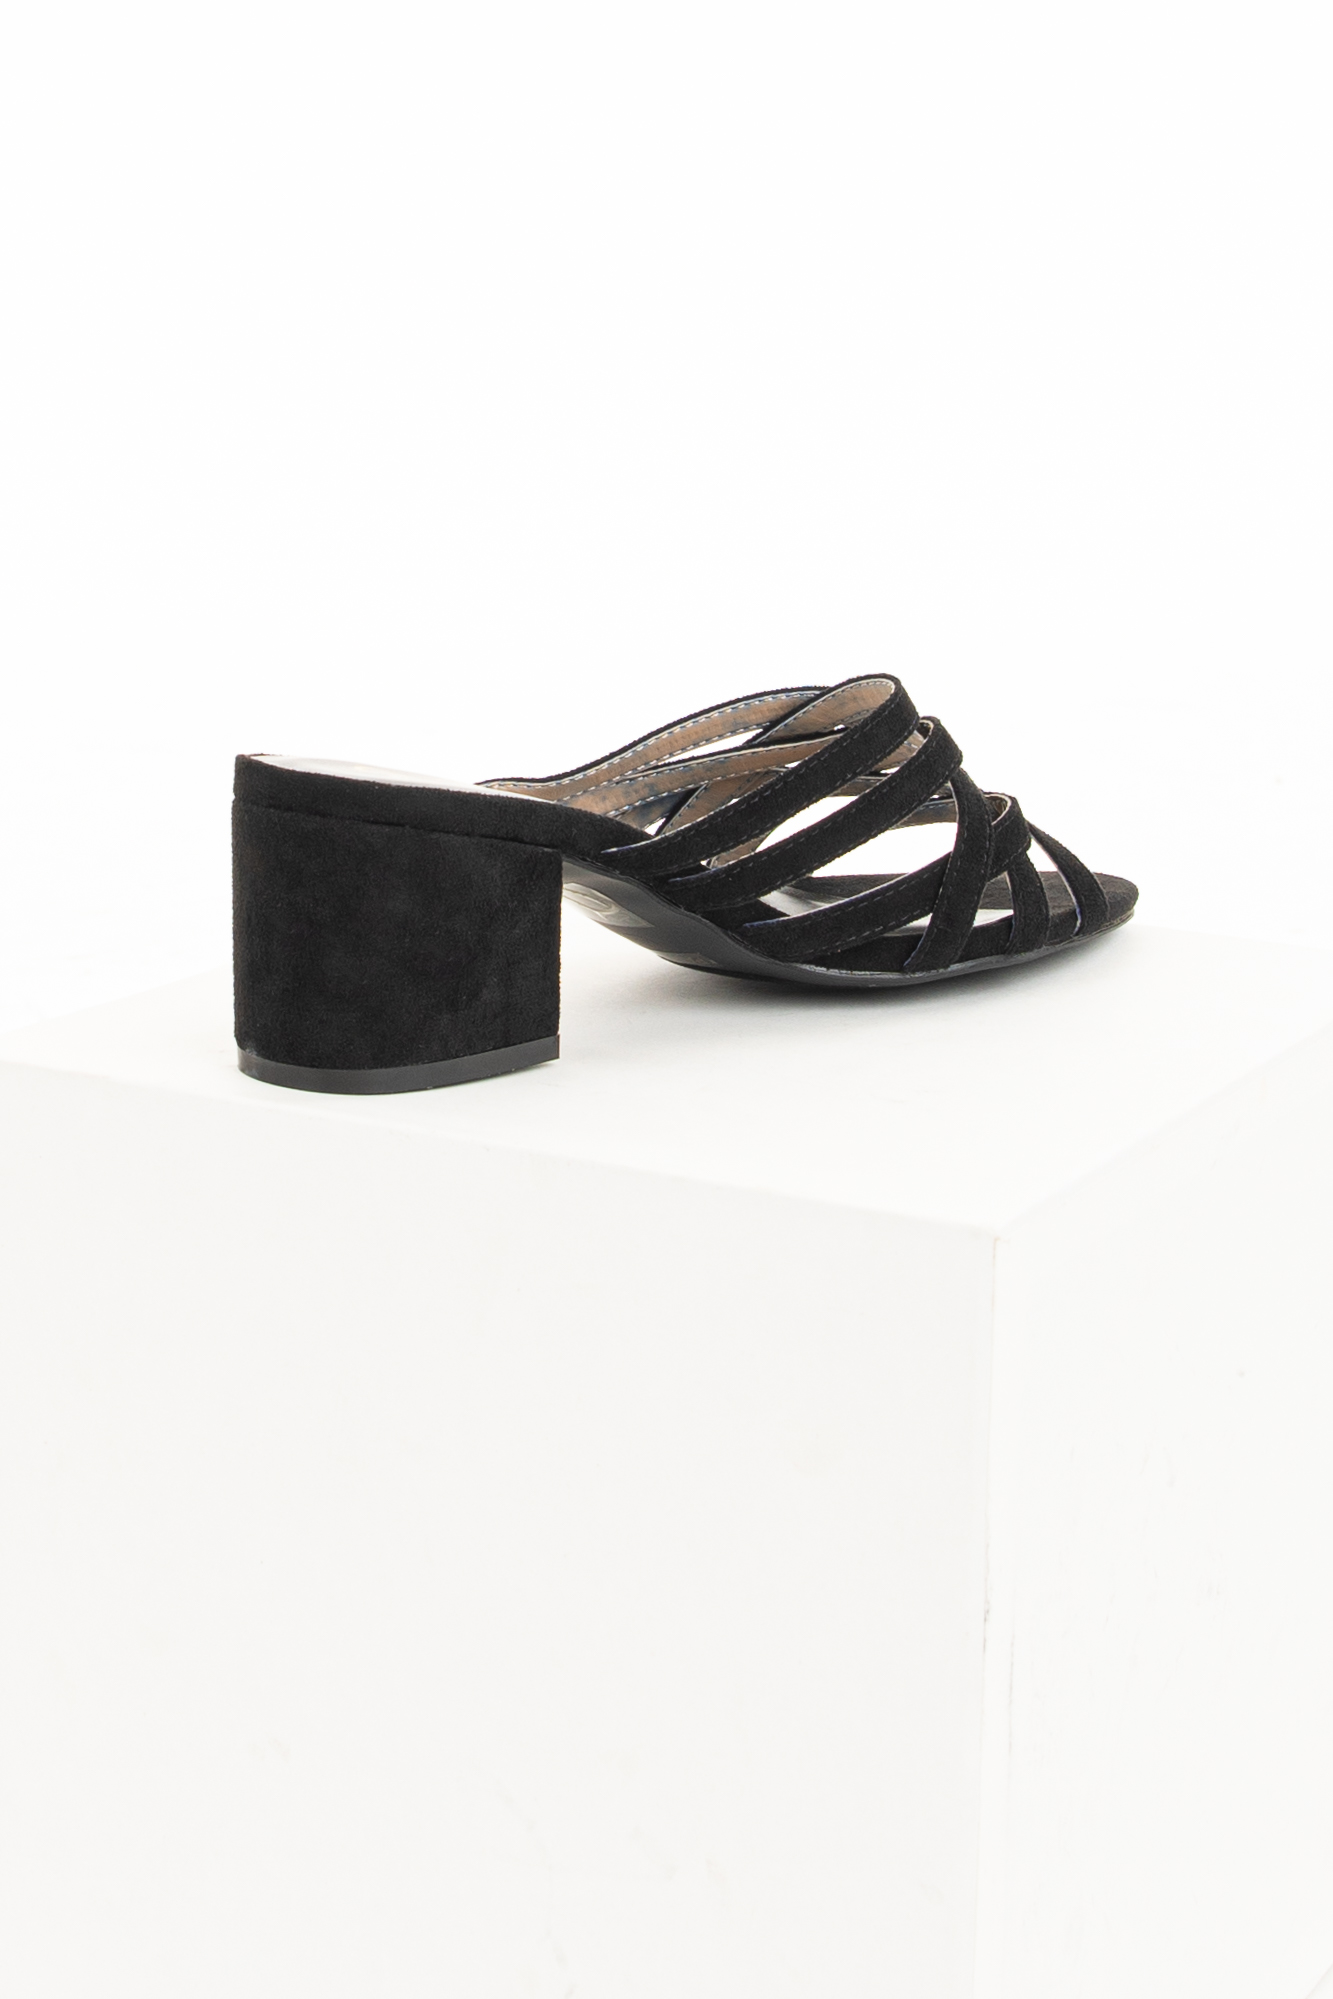 Black Faux Suede Chunky Heeled Strappy Sandals